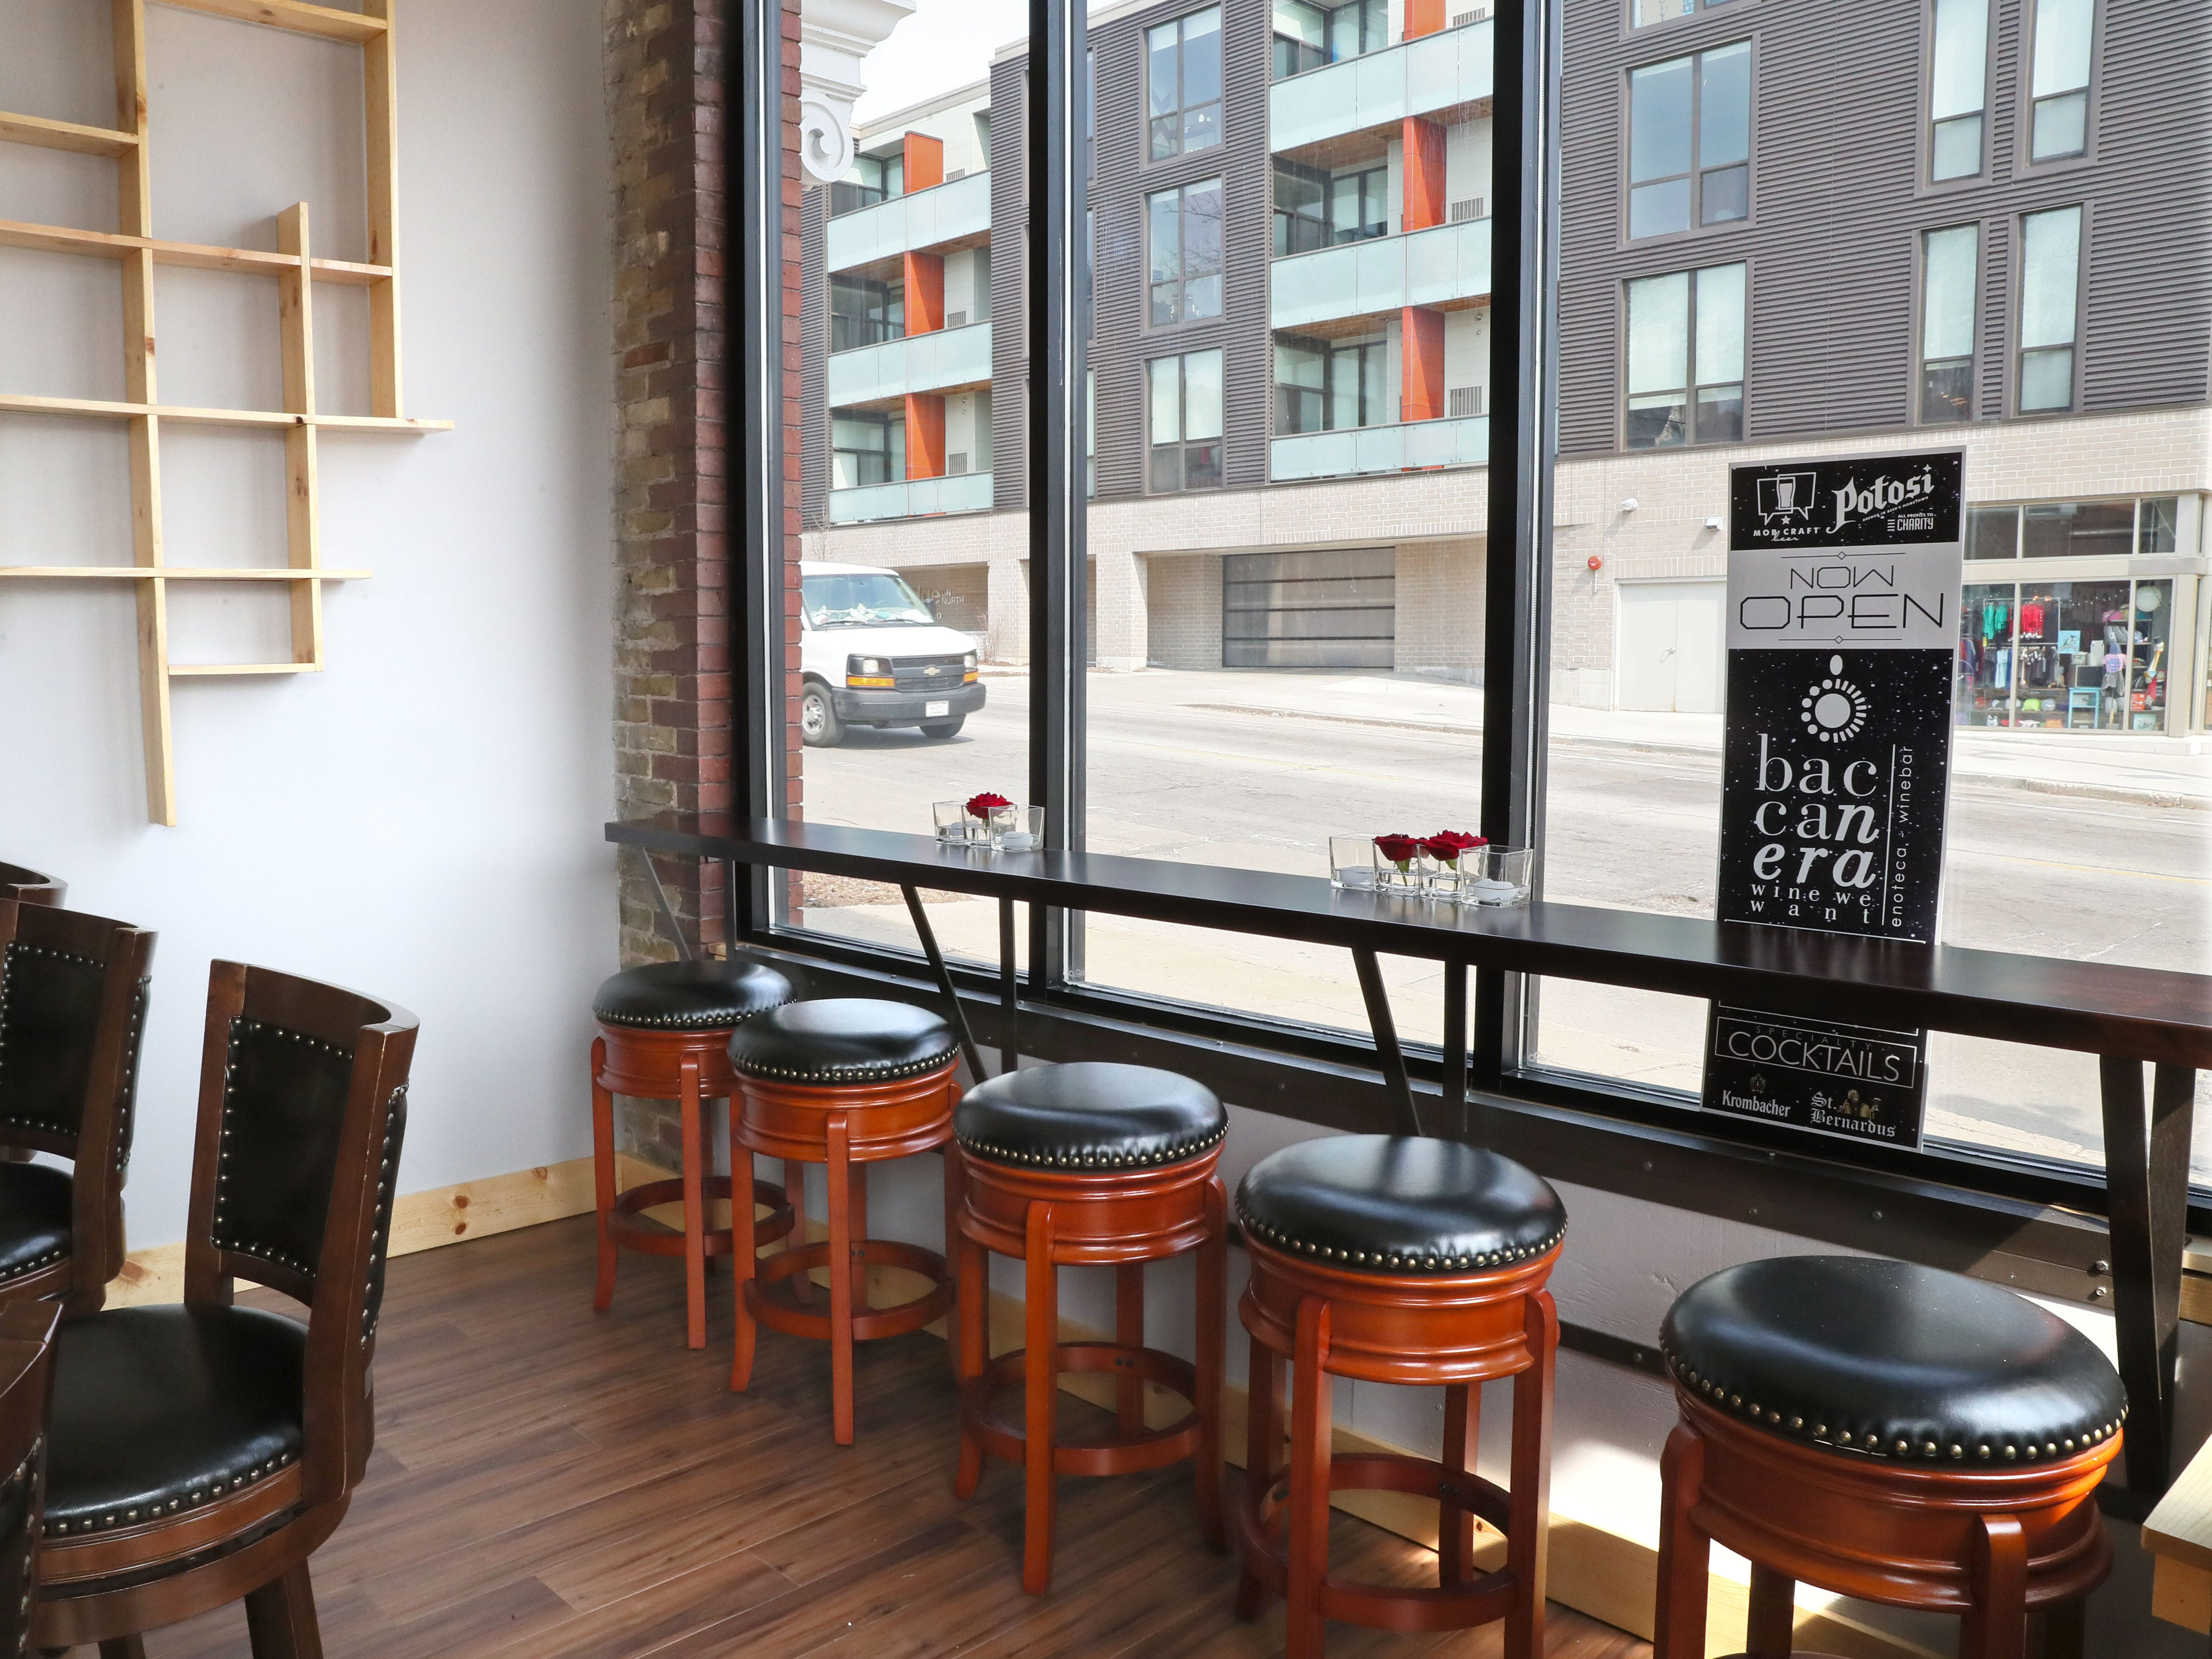 The seating area at Baccanera, a new wine bar at 1732 E. North Ave in Milwaukee.